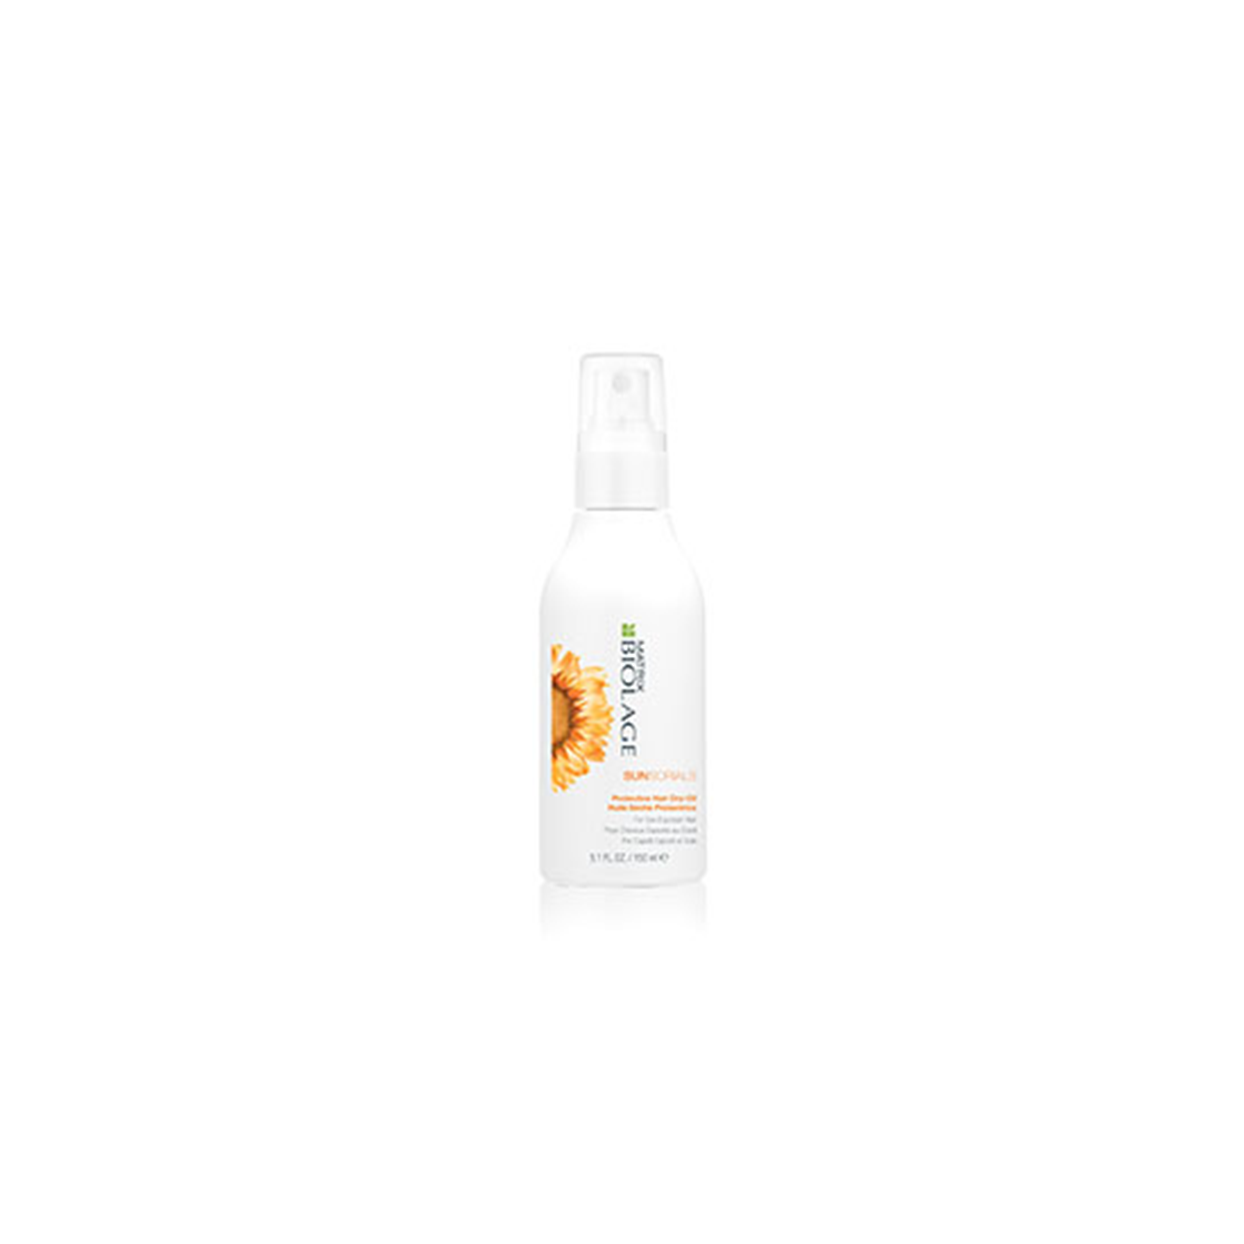 Biolage Sunsorials Protective After-Sun Spray for Sun Exposed Hair